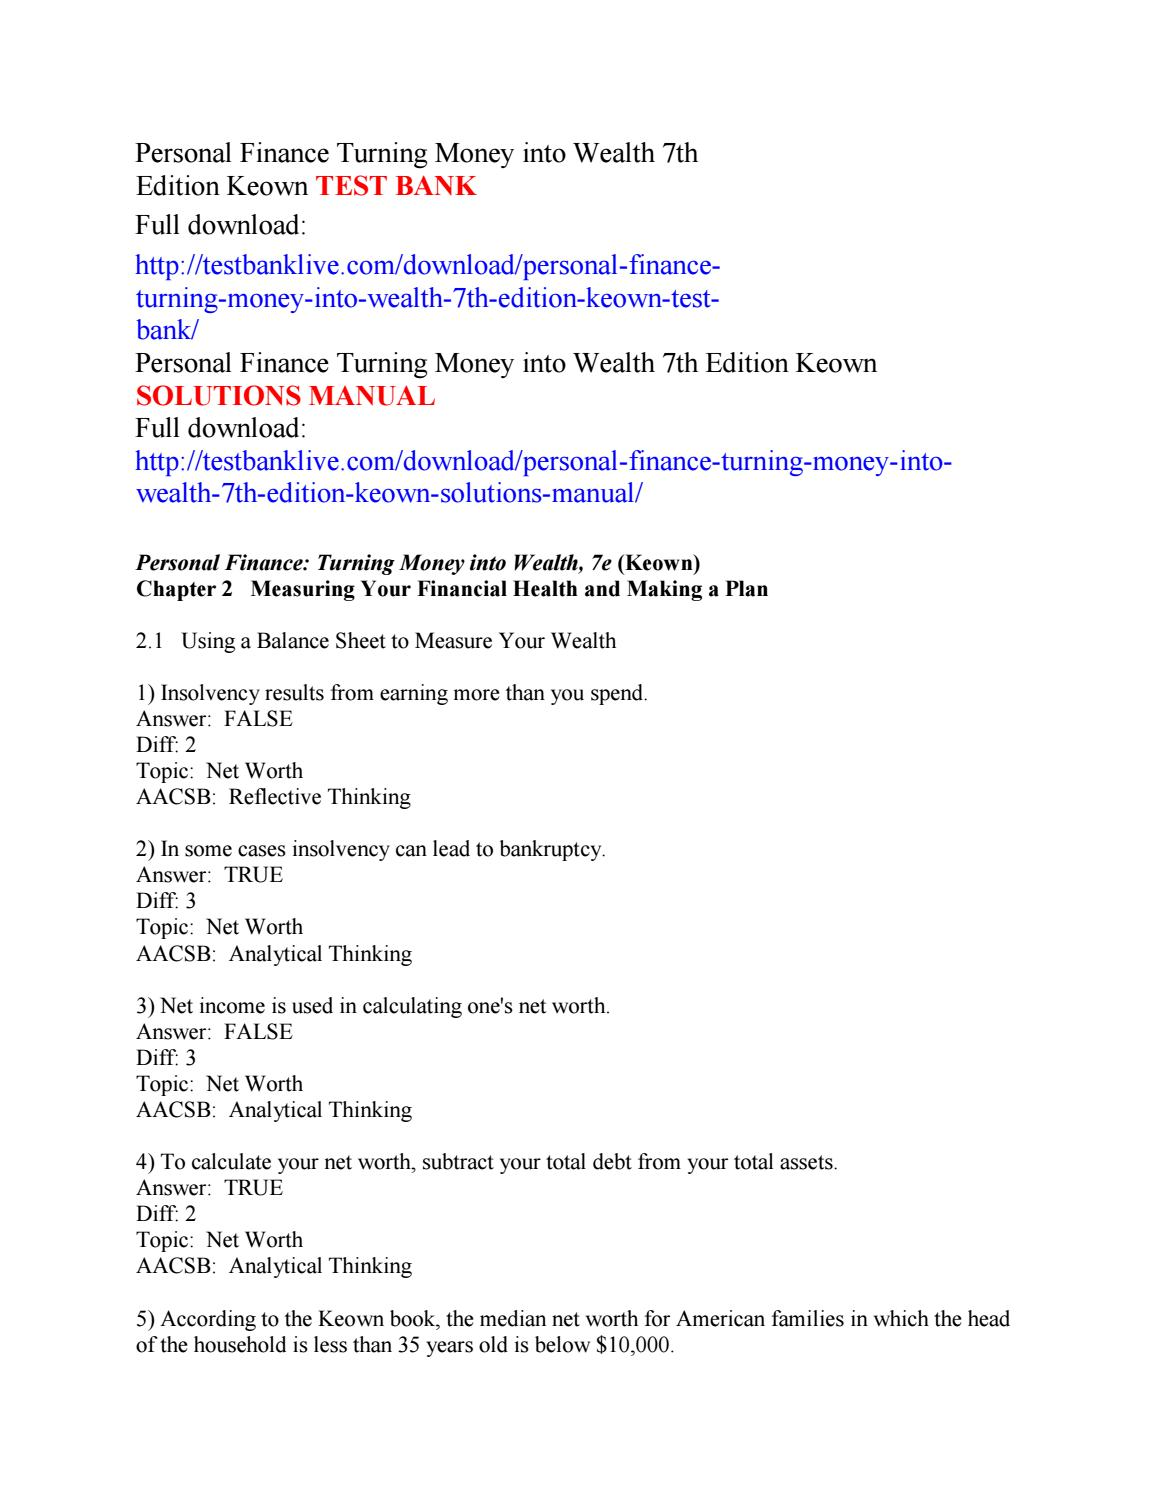 Personal finance turning money into wealth 7th edition keown test bank by  Walker111 - issuu